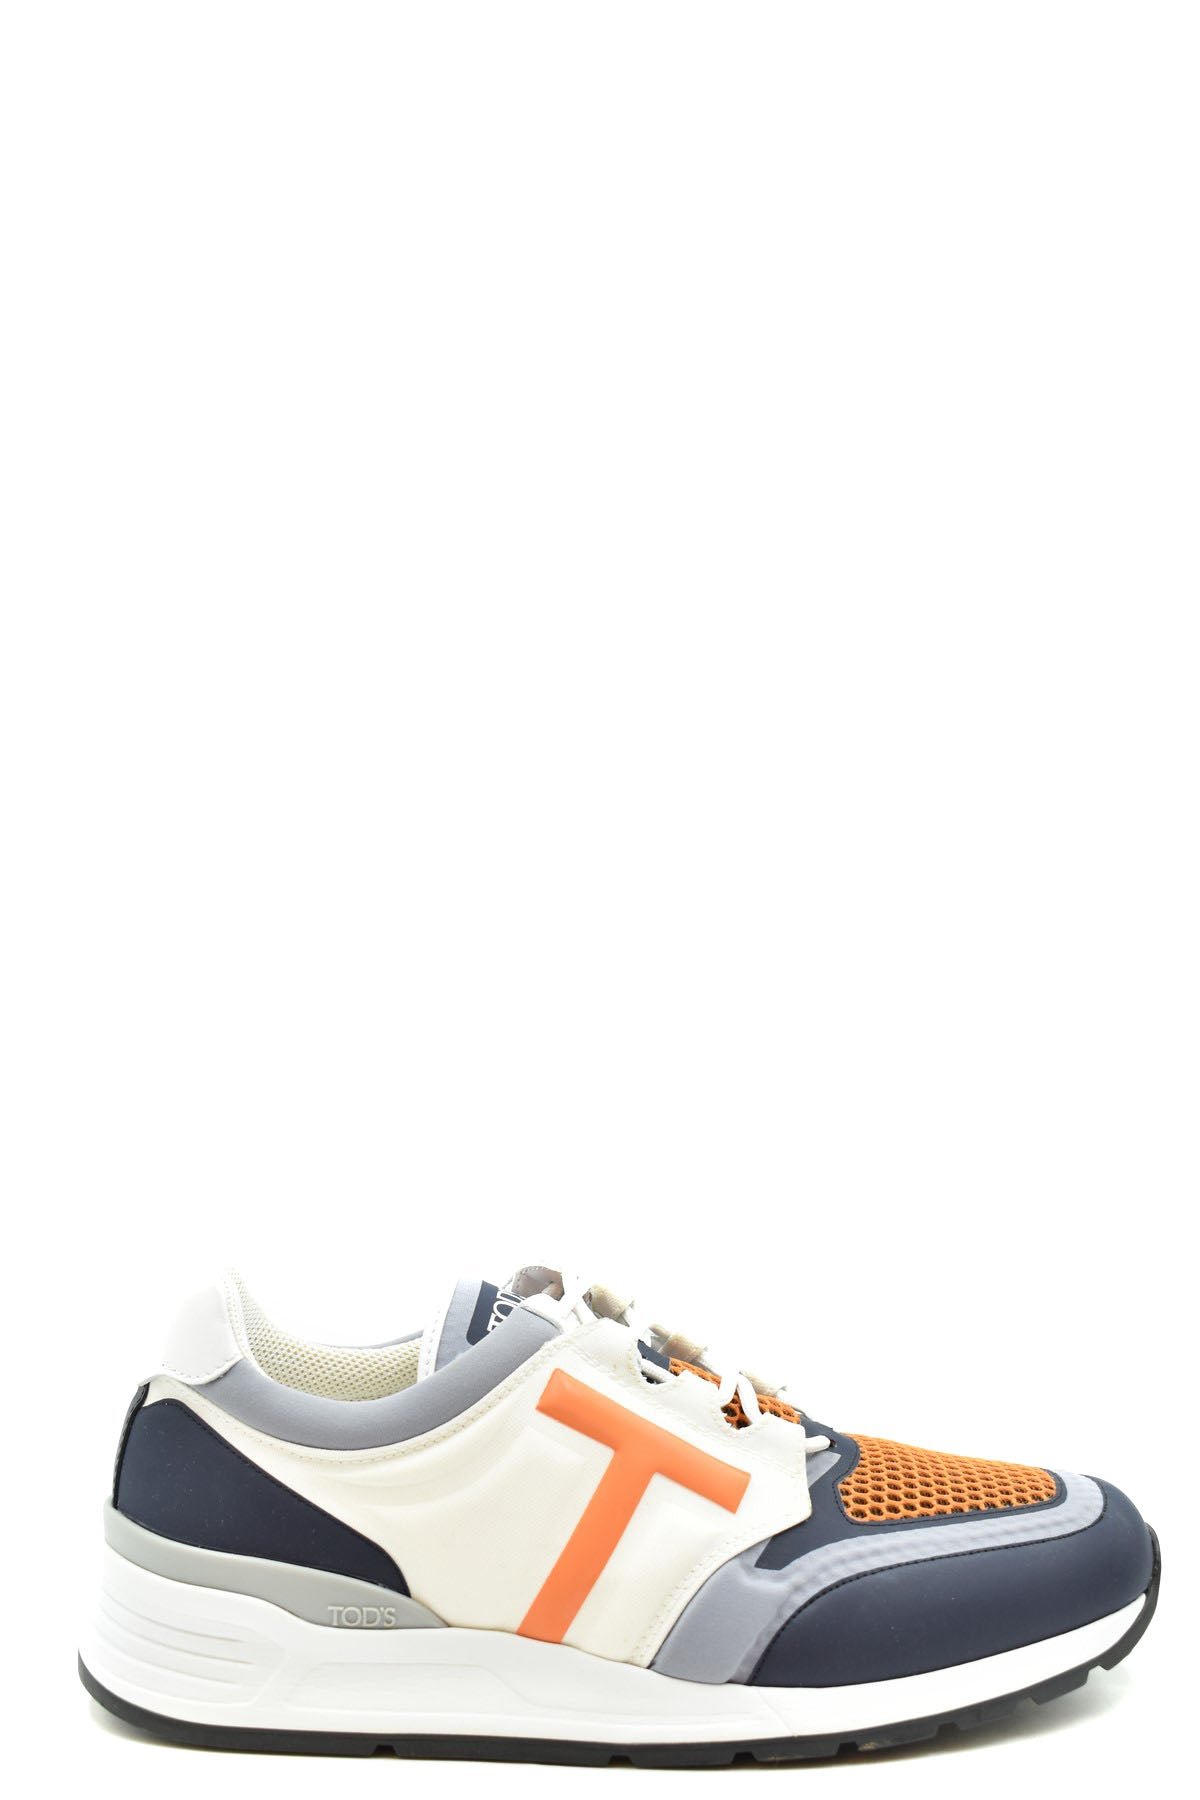 Shoes Tod'S-Sports & Entertainment - Sneakers-5.5-Product Details Terms: New With LabelMain Color: MulticolorType Of Accessory: ShoesSeason: Spring / SummerMade In: ItalyGender: ManSize: UkComposition: Nylon 100%Year: 2020Manufacturer Part Number: Xxm69As20Ksj77Dg-Keyomi-Sook